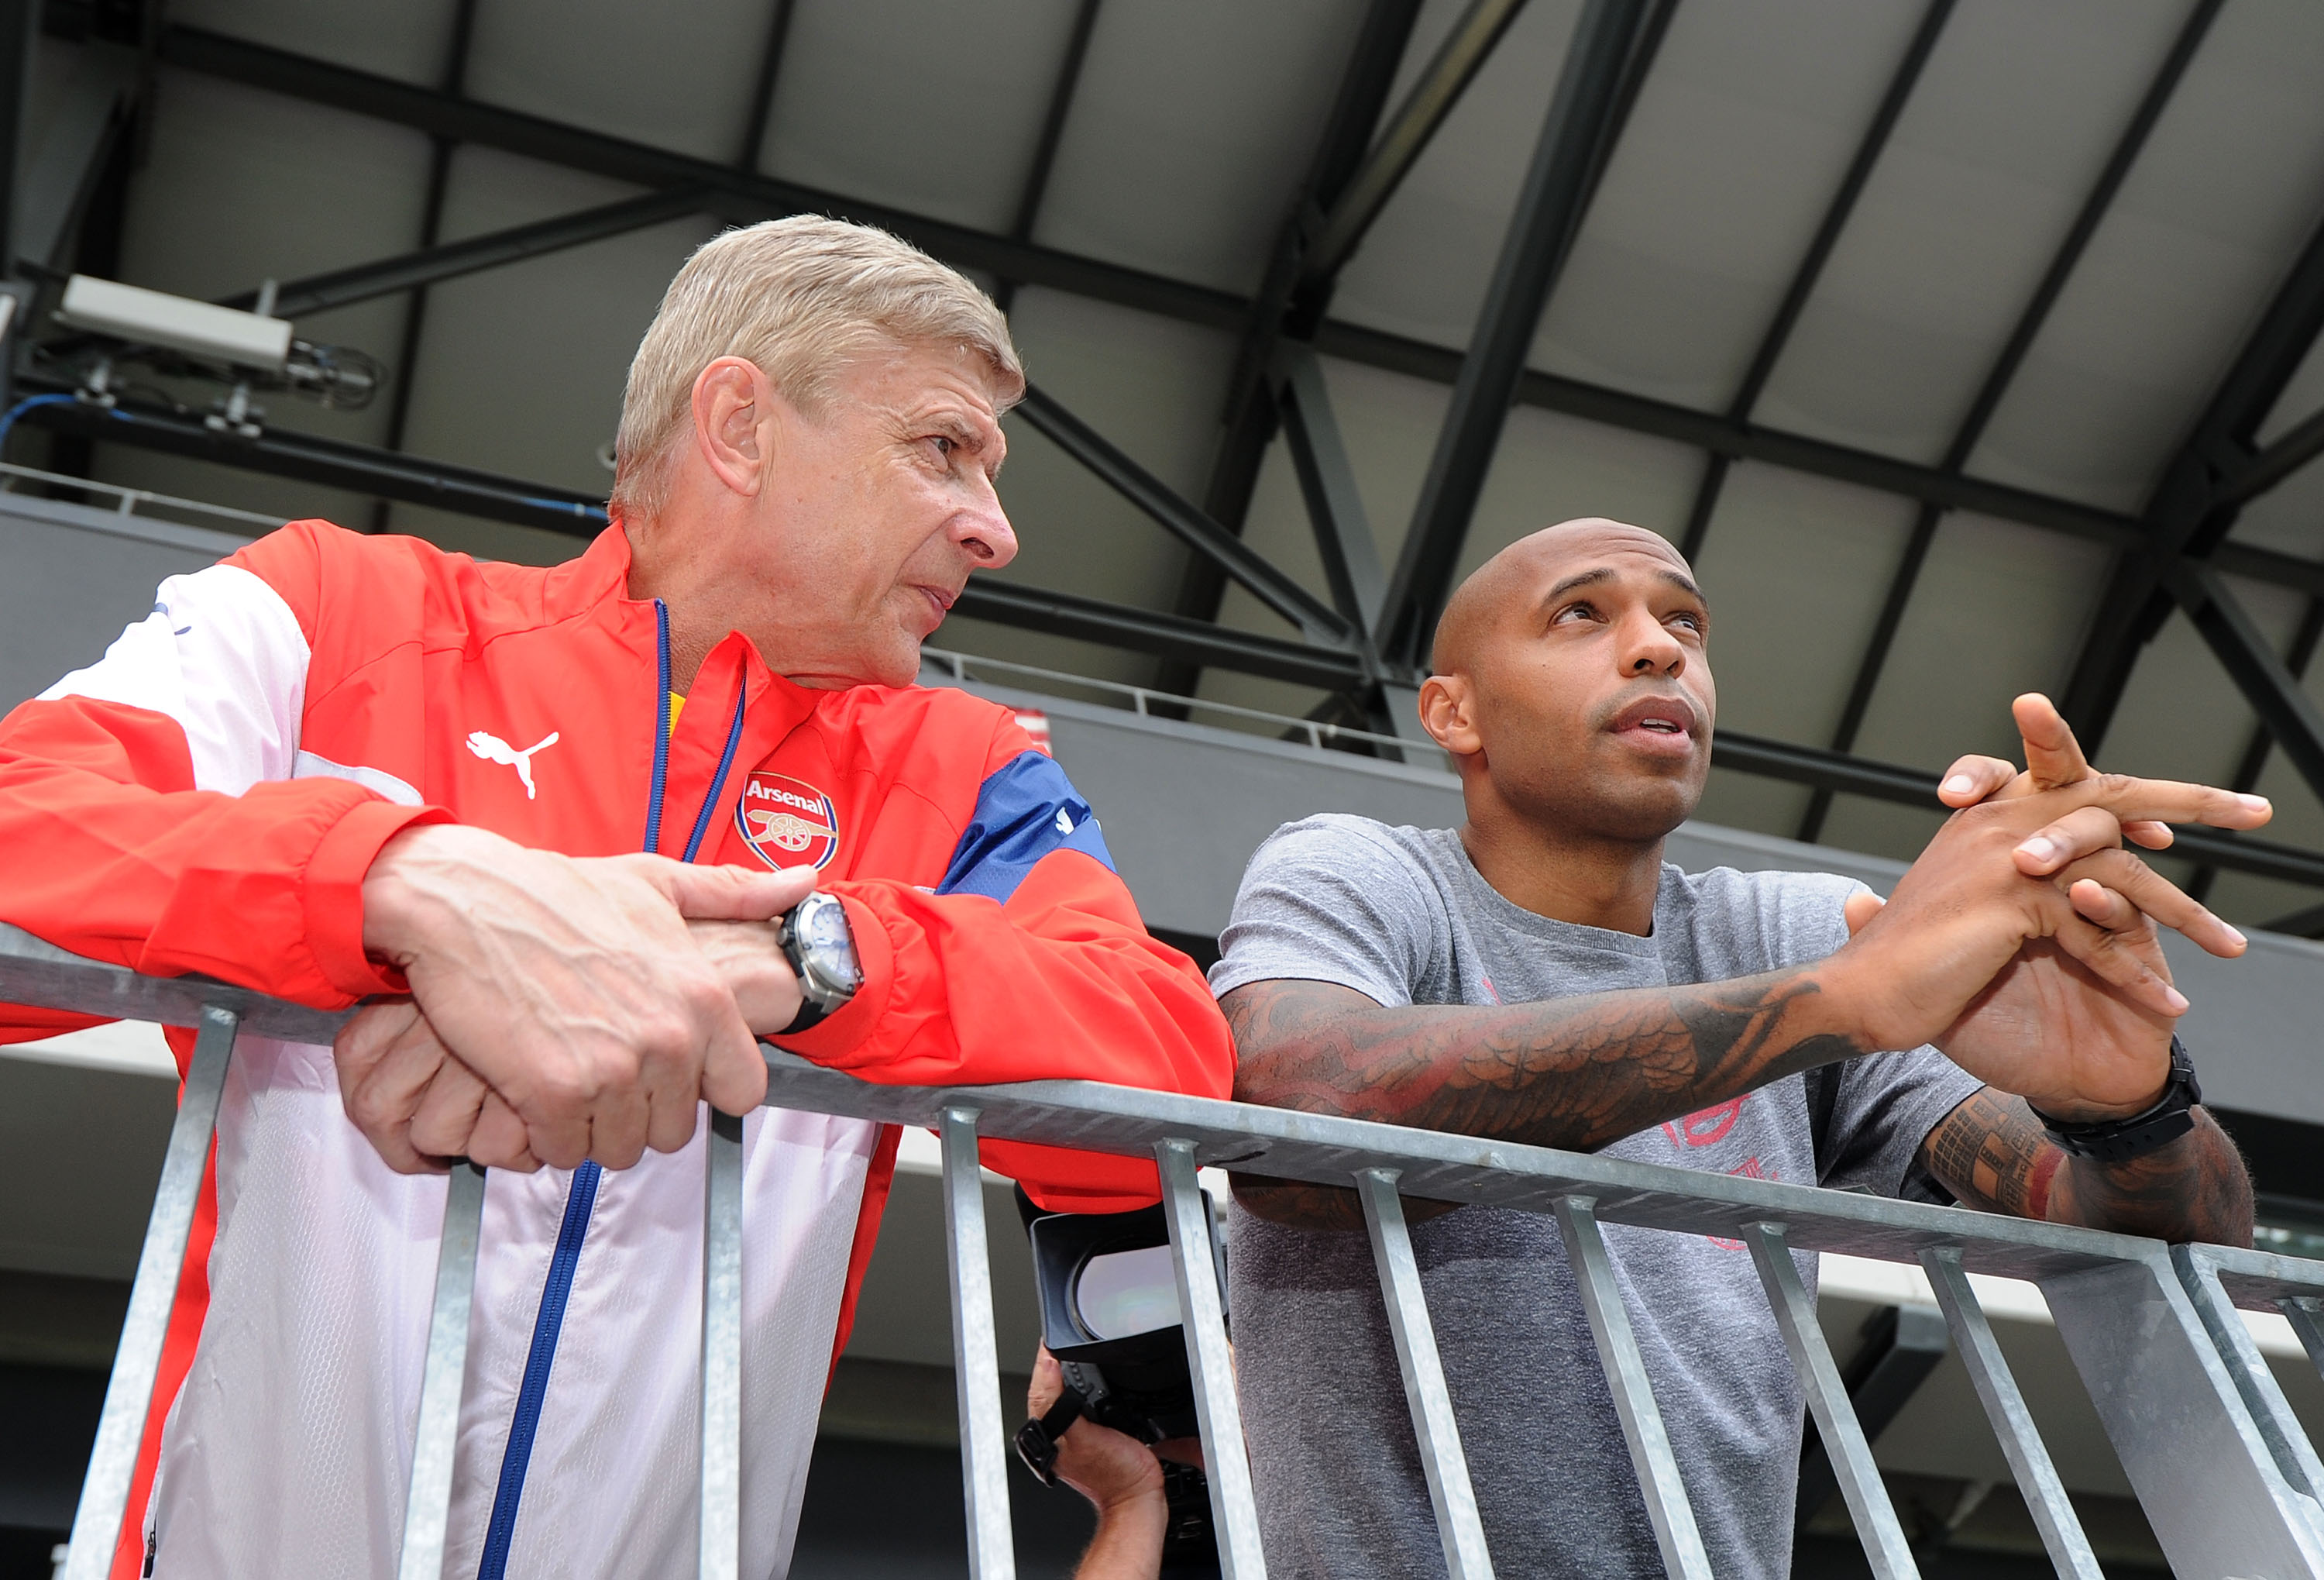 Arsene Wenger gives advice to Thierry Henry after taking charge of Monaco